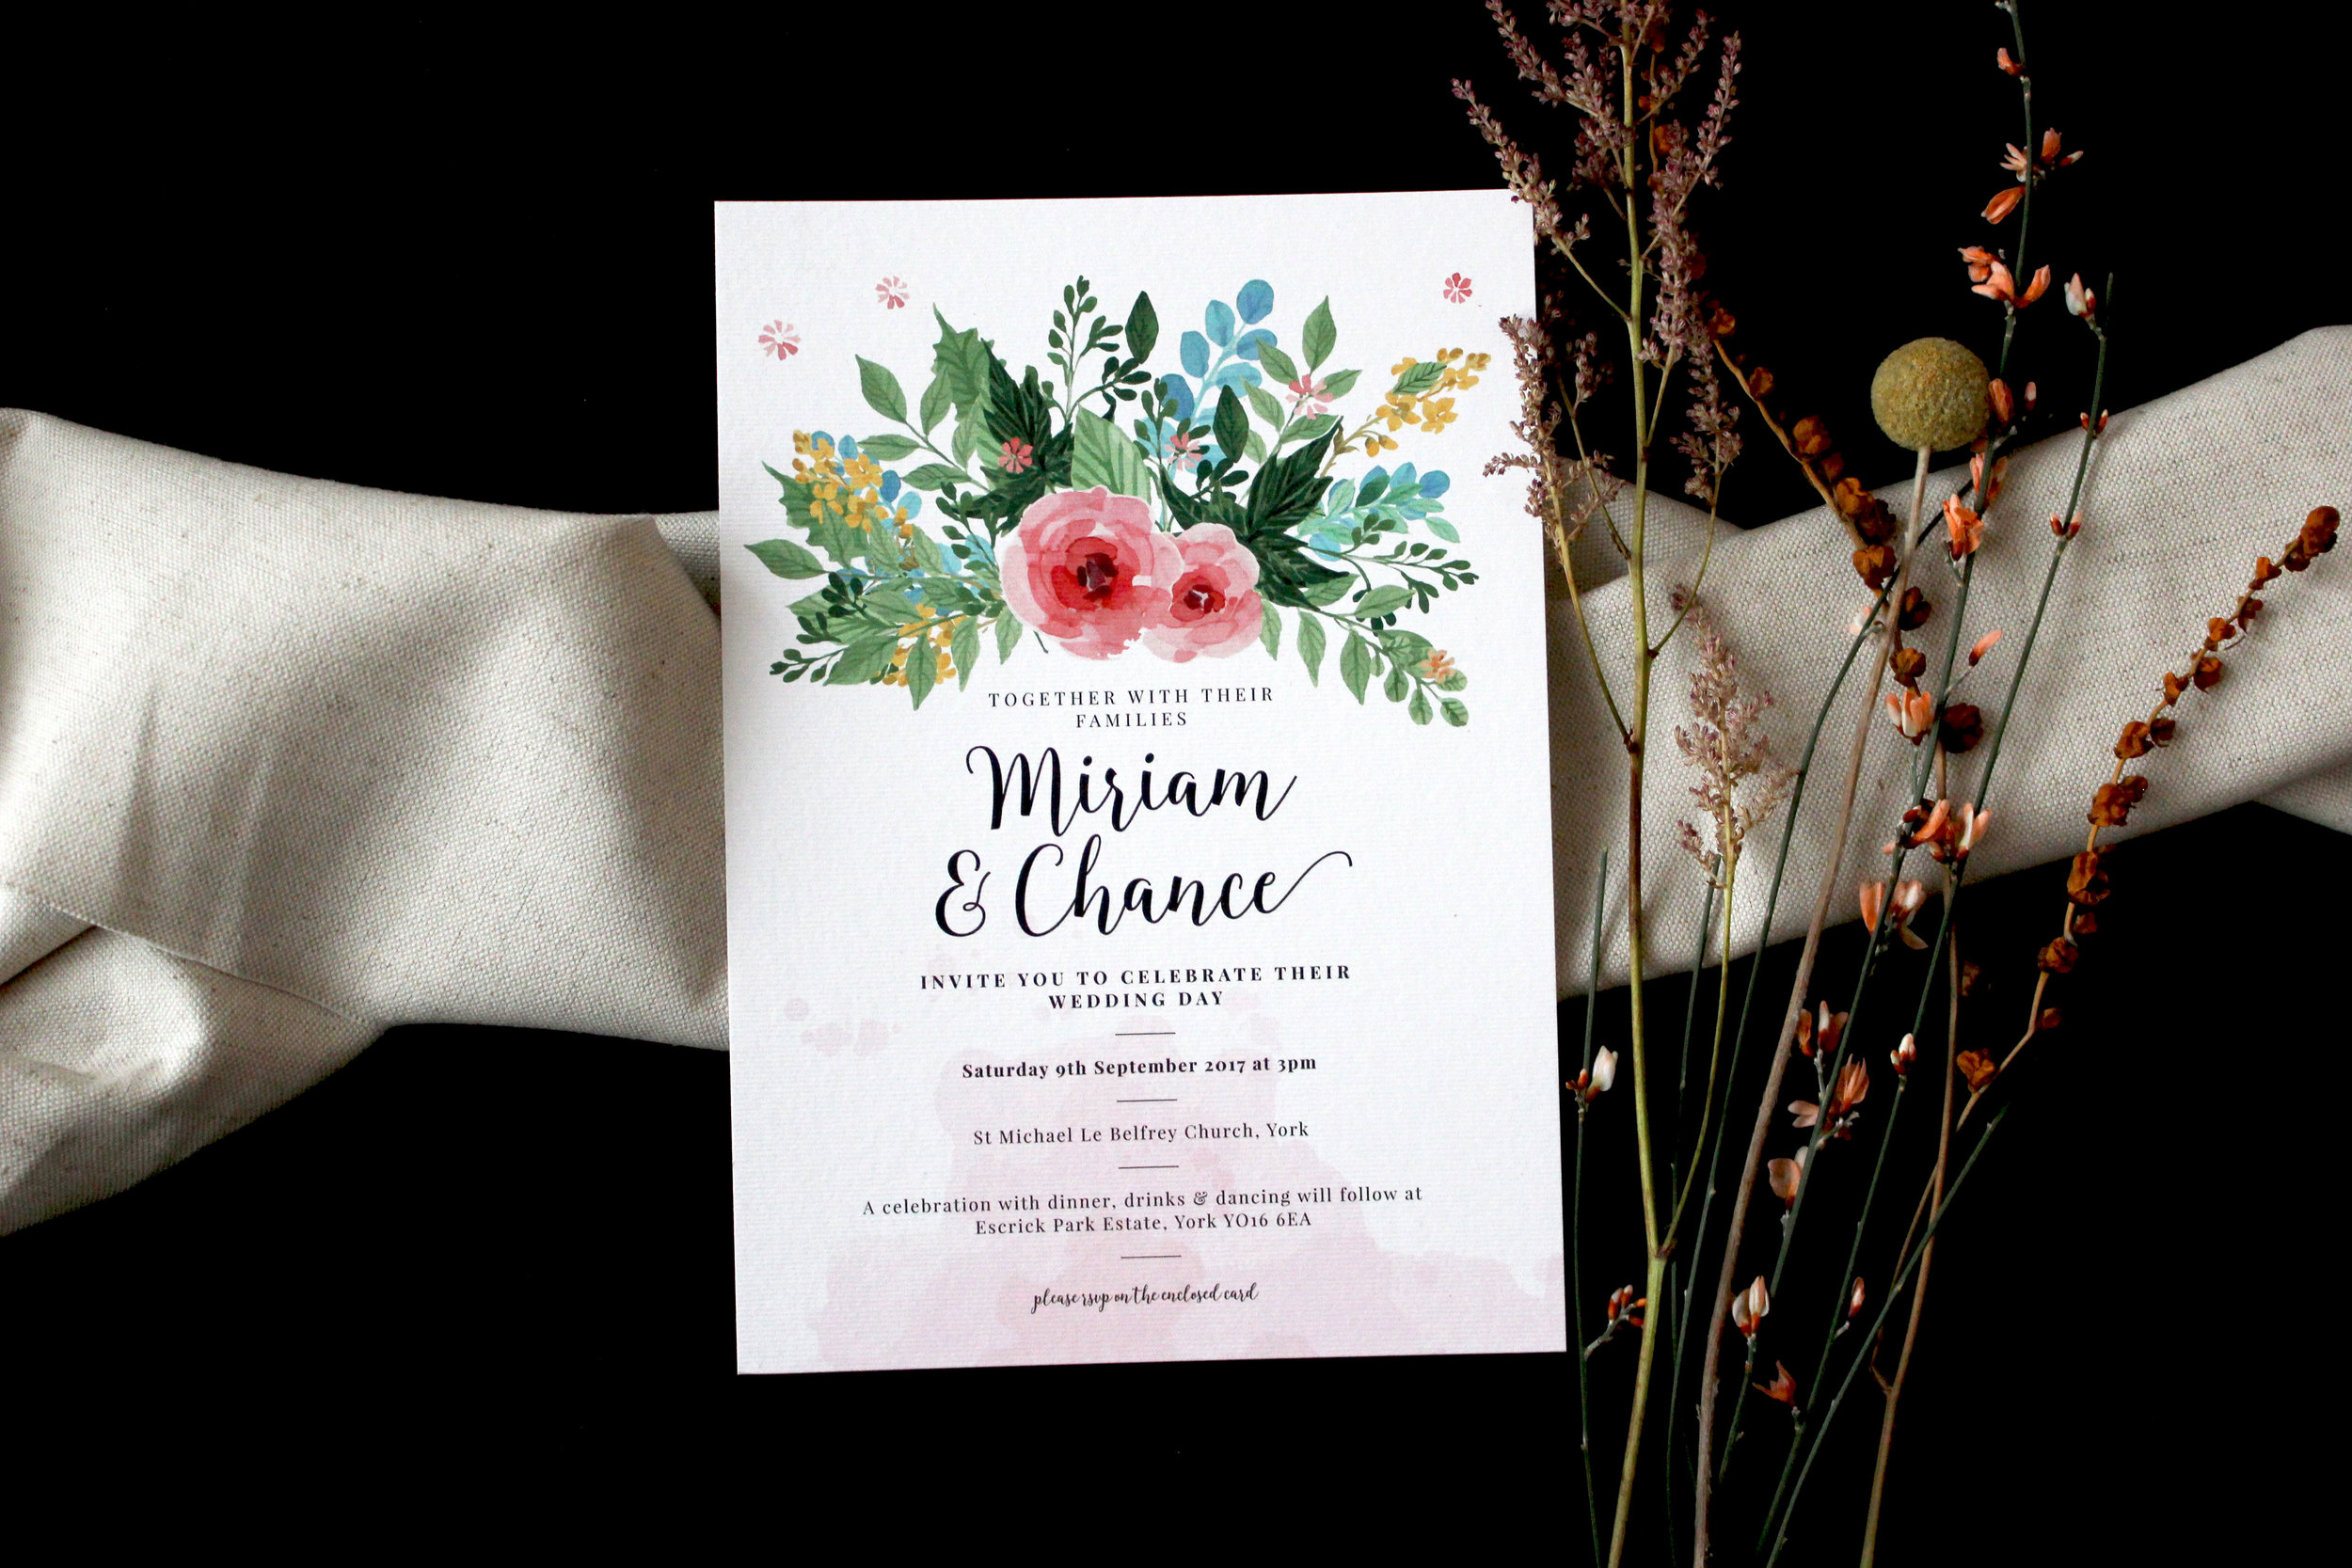 Miriam & Chances wild floral invitations